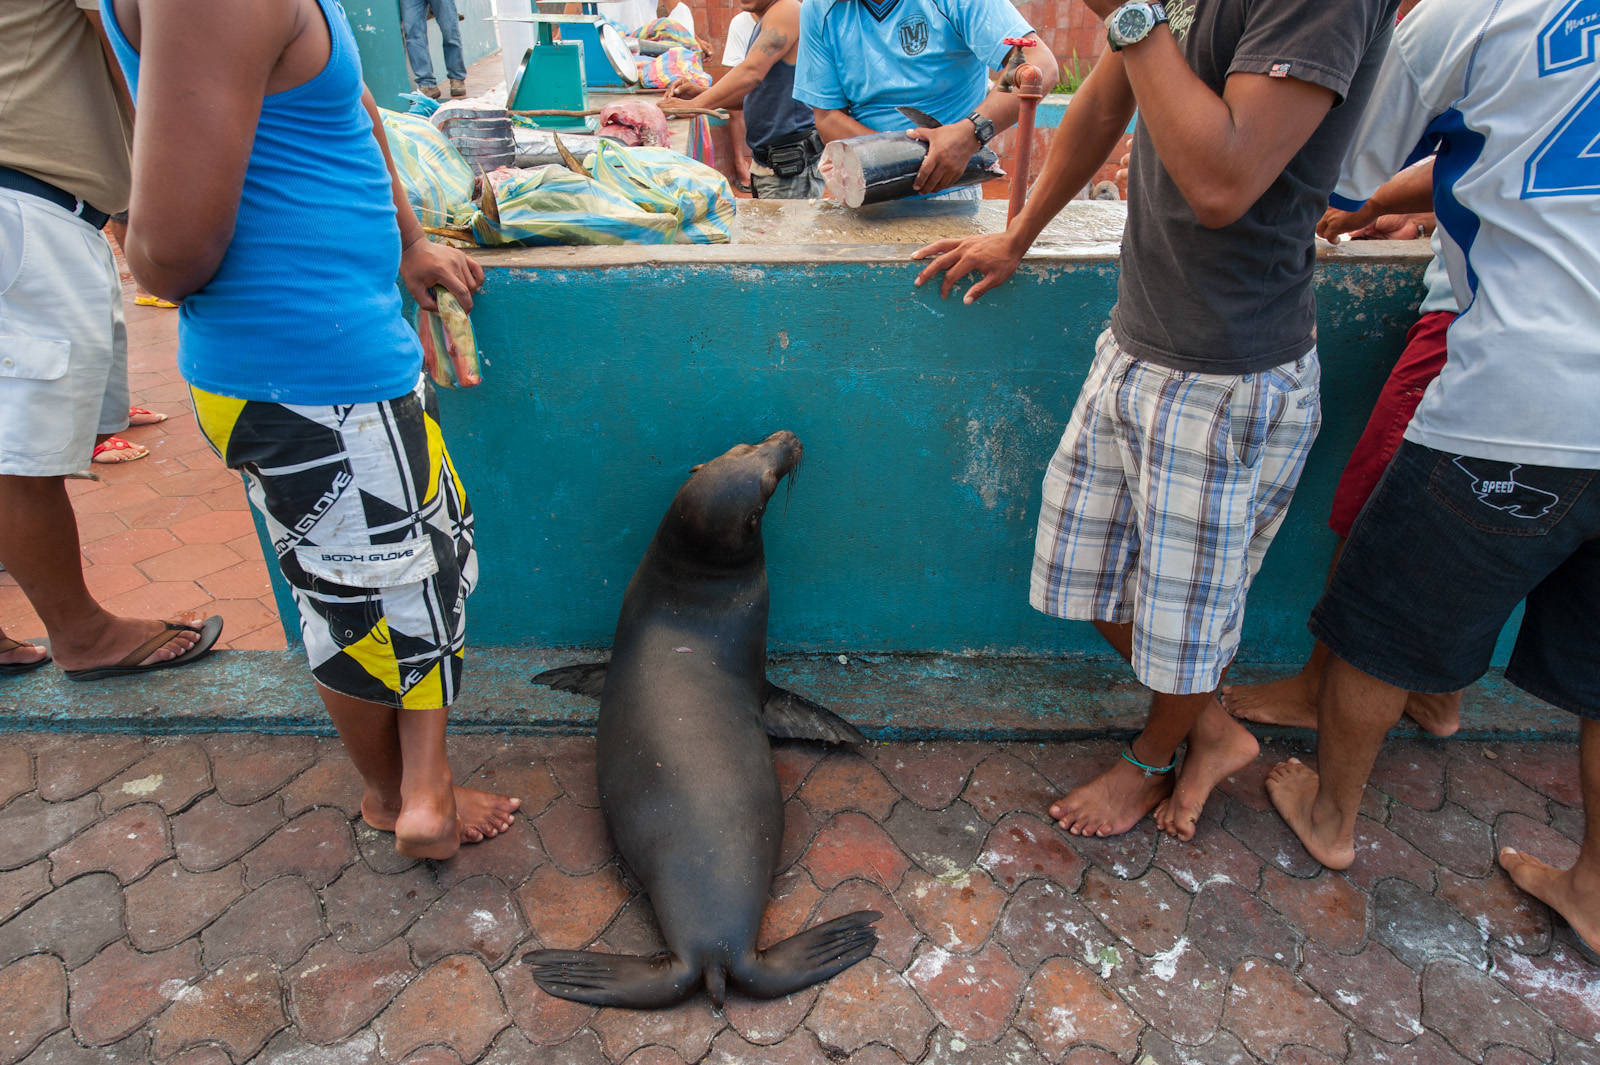 Photo: A tame Galapagos sea lion (Zalophus wollebaeki) beg for fish scraps at a fish market in the town of Puerto Ayora, on Santa Cruz Island.